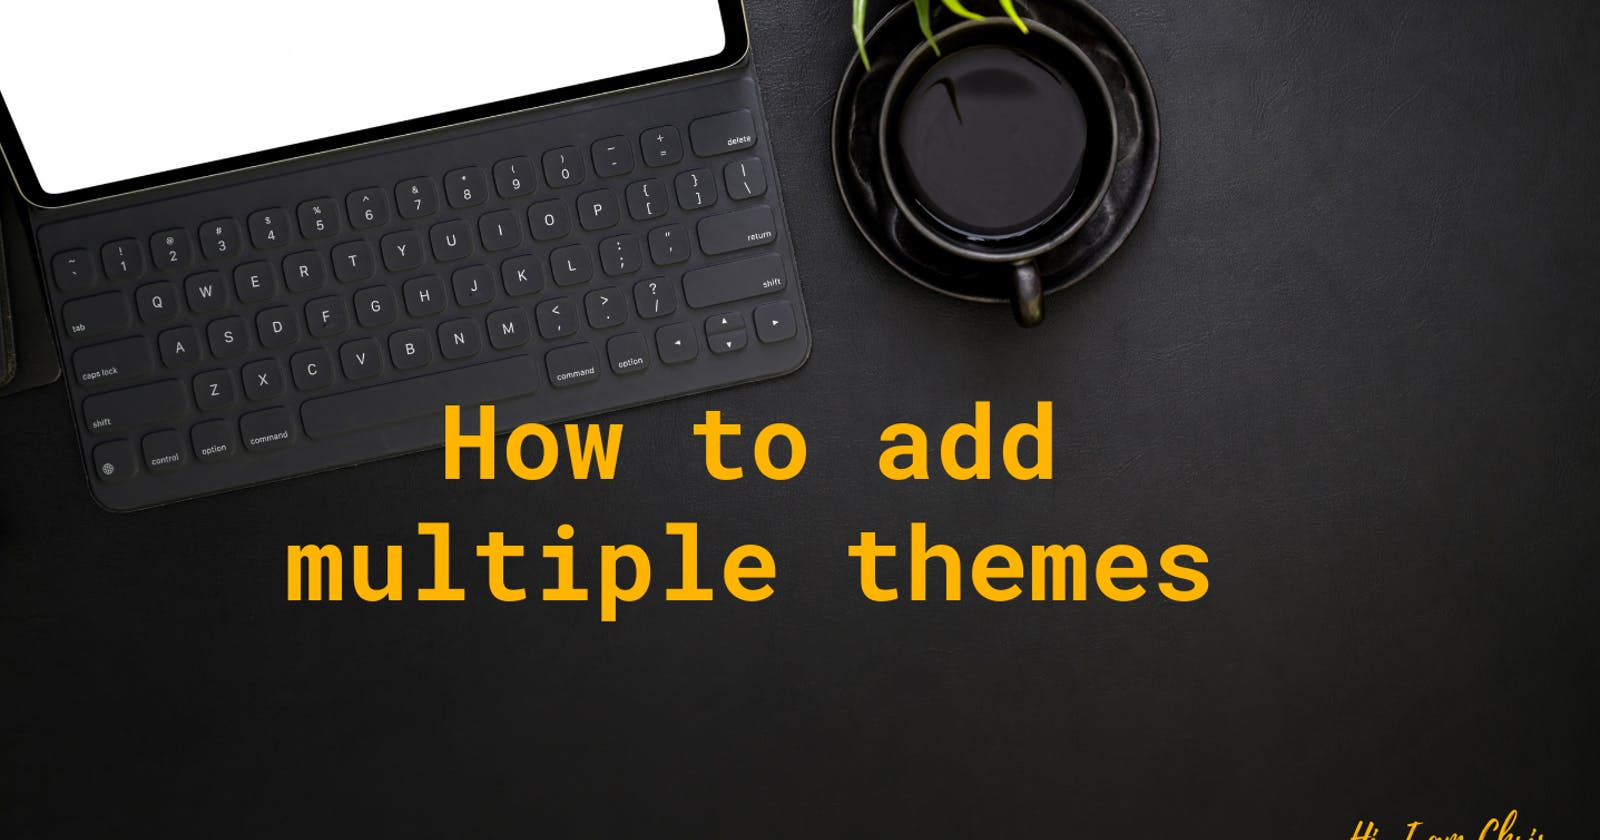 How to make multi-theme support using CSS variables